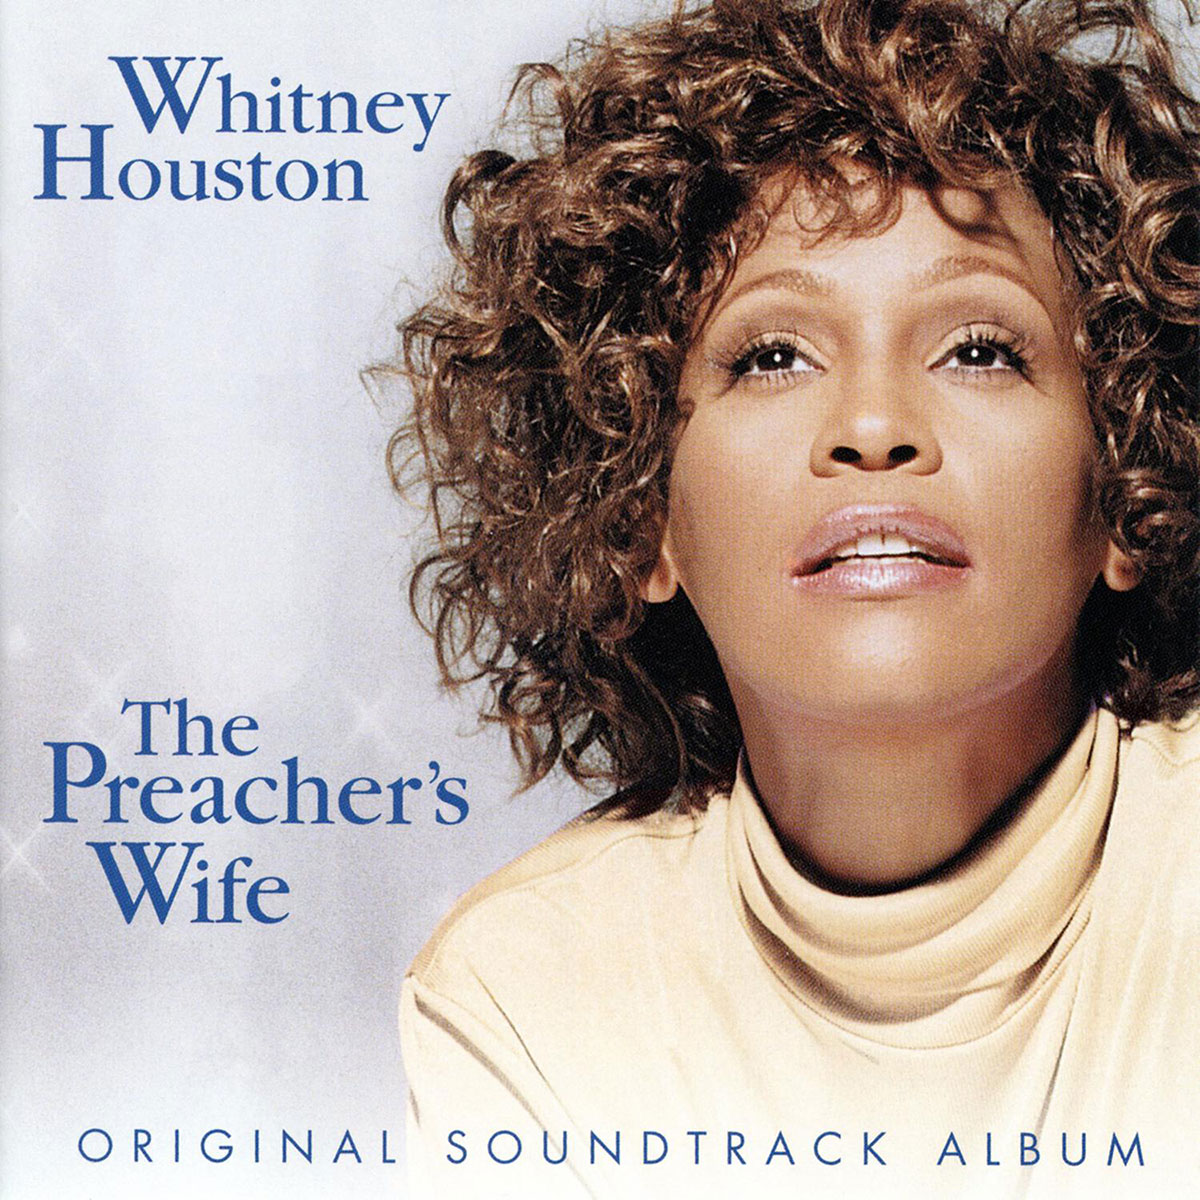 Preachers wife movie music, real black teen sex